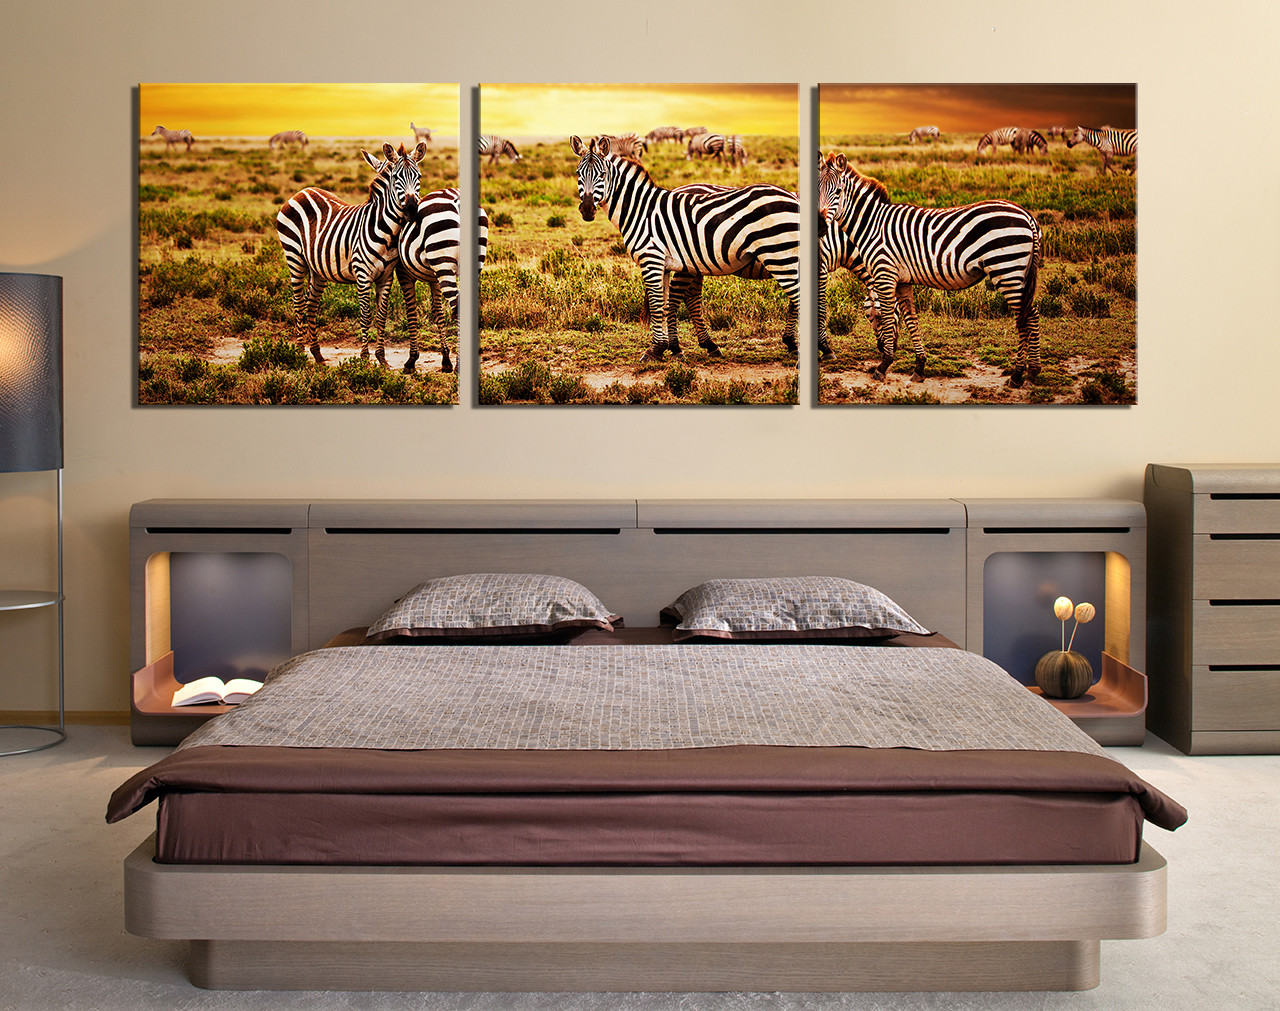 3 Piece Large Pictures, Bedroom Canvas Wall Art, Zebra Group Canvas, Animal  Art